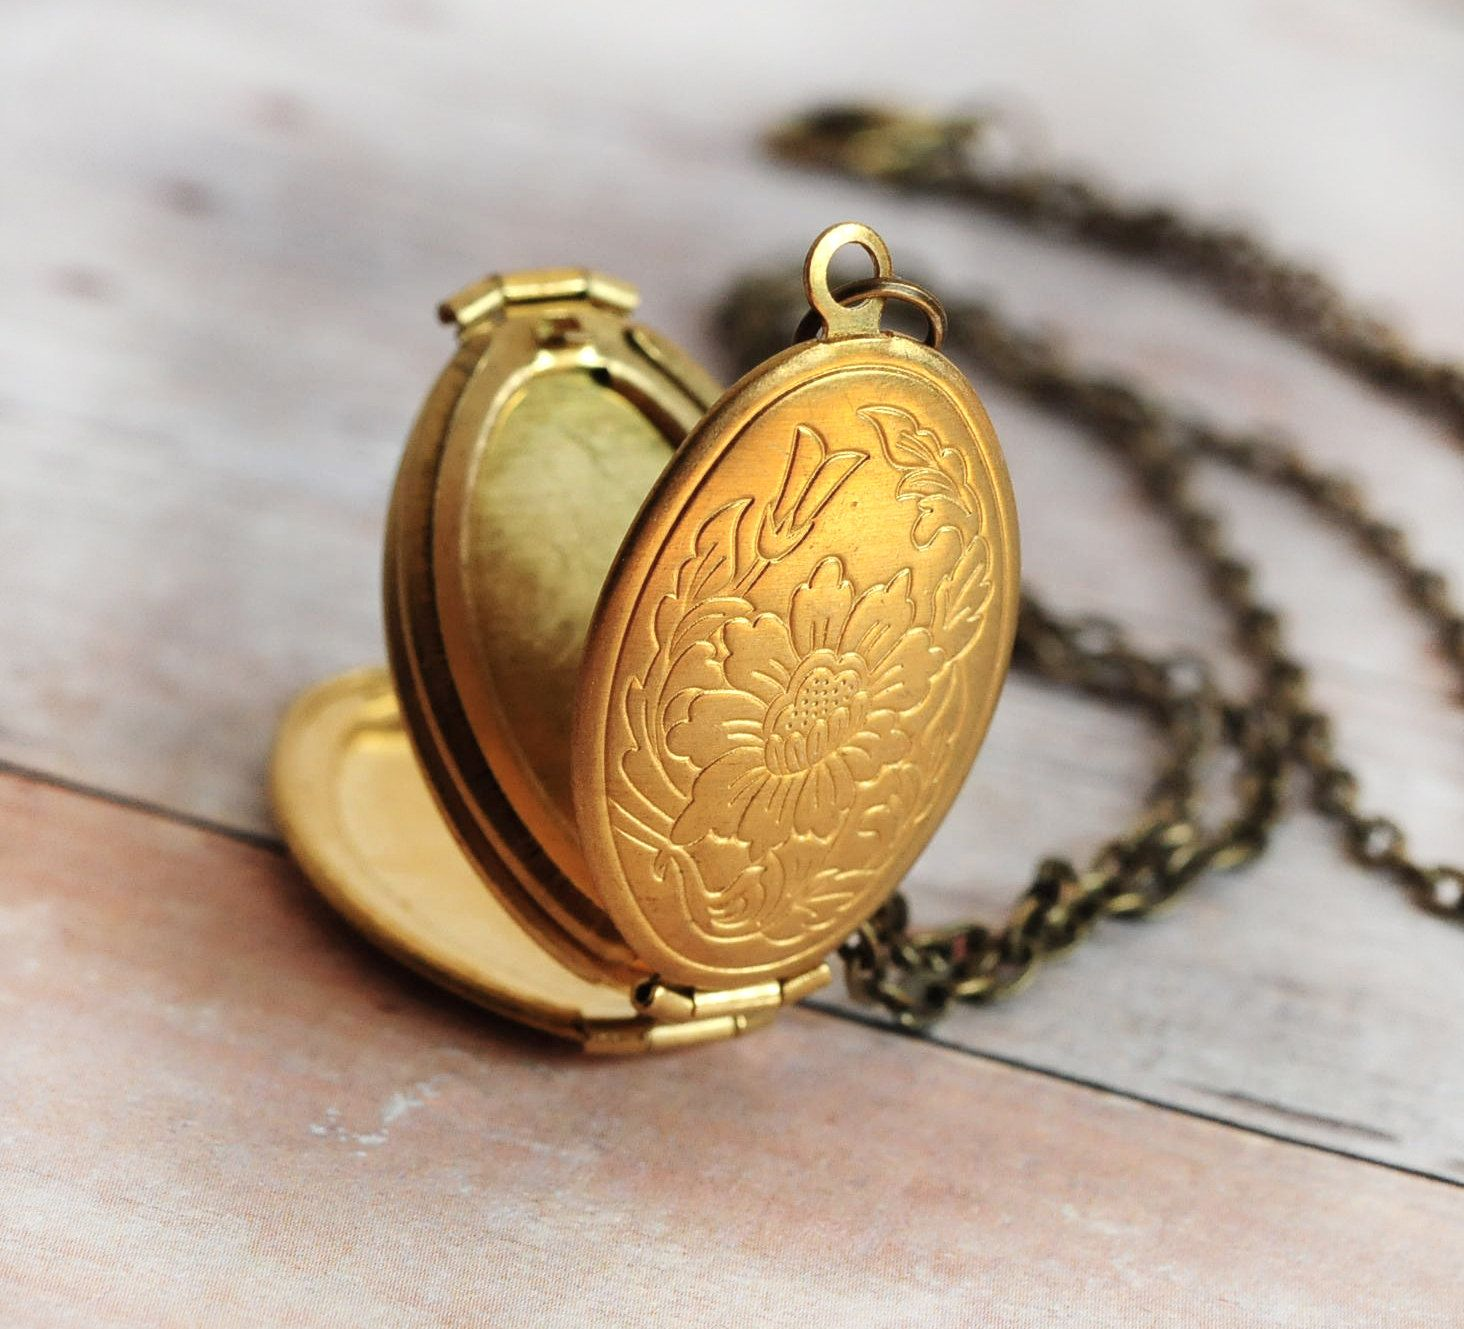 Gold locket necklace graduation gift for her mother gift necklace gold locket necklace graduation gift for her mother gift necklace photo locket children jewelry necklace mother family aloadofball Gallery